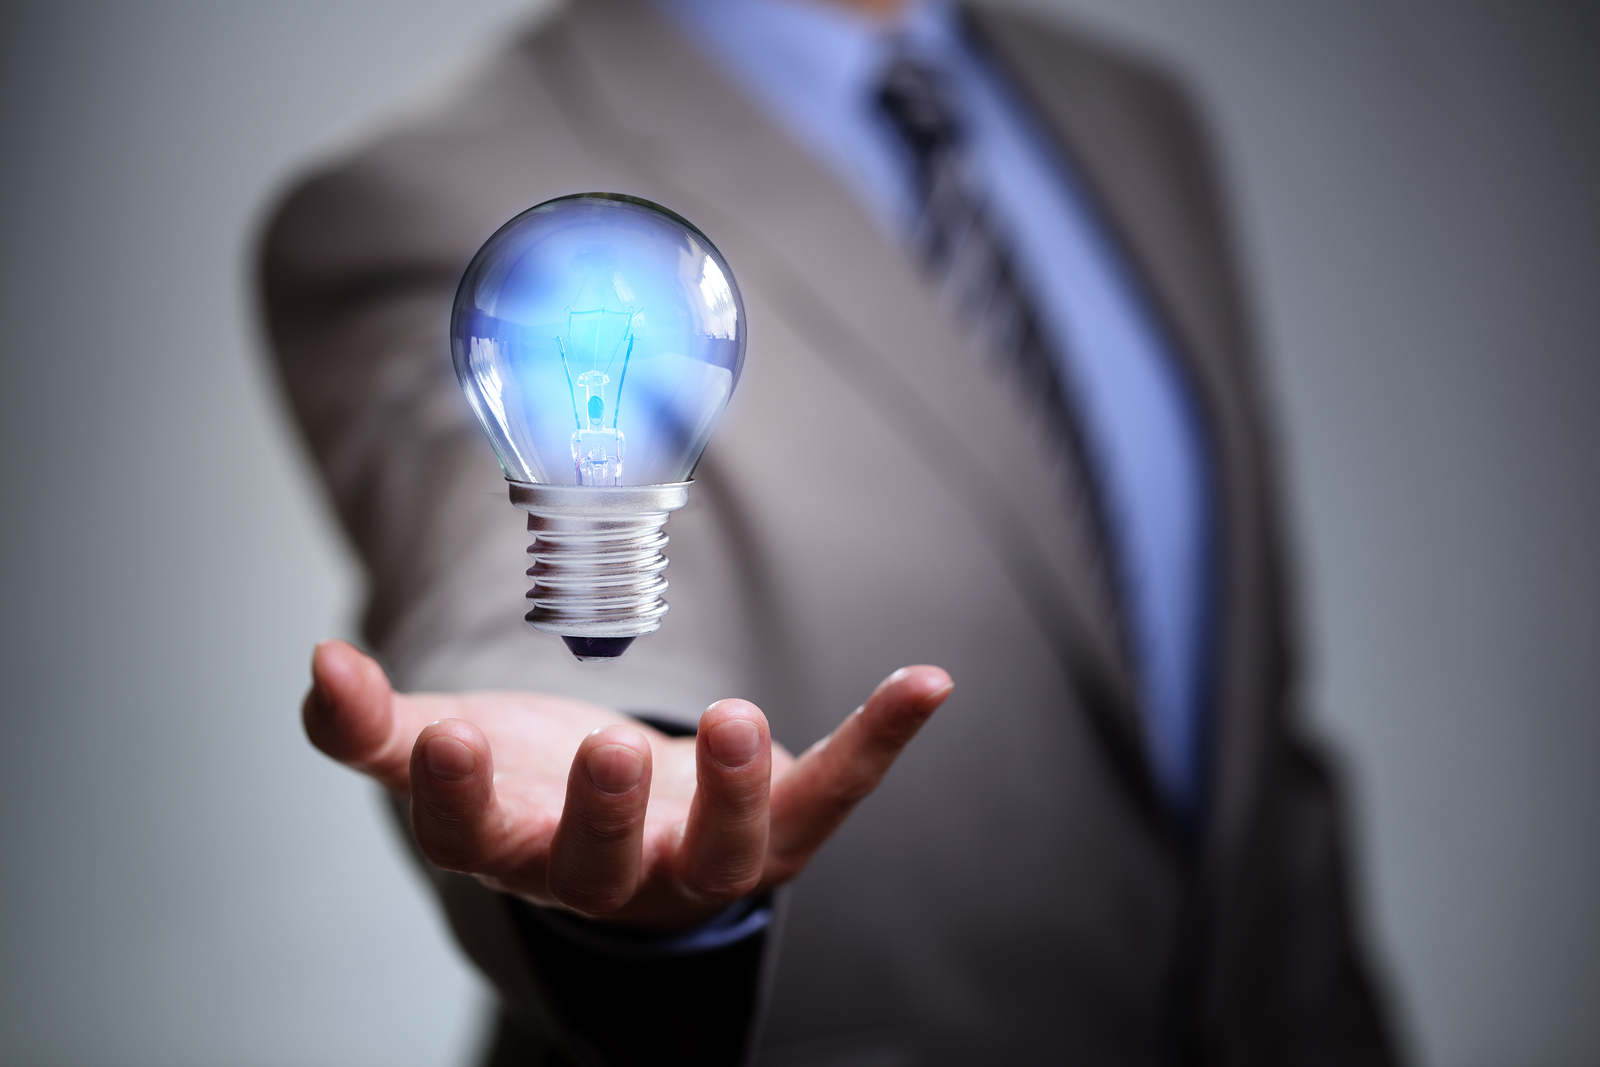 light bulb invention and purpose